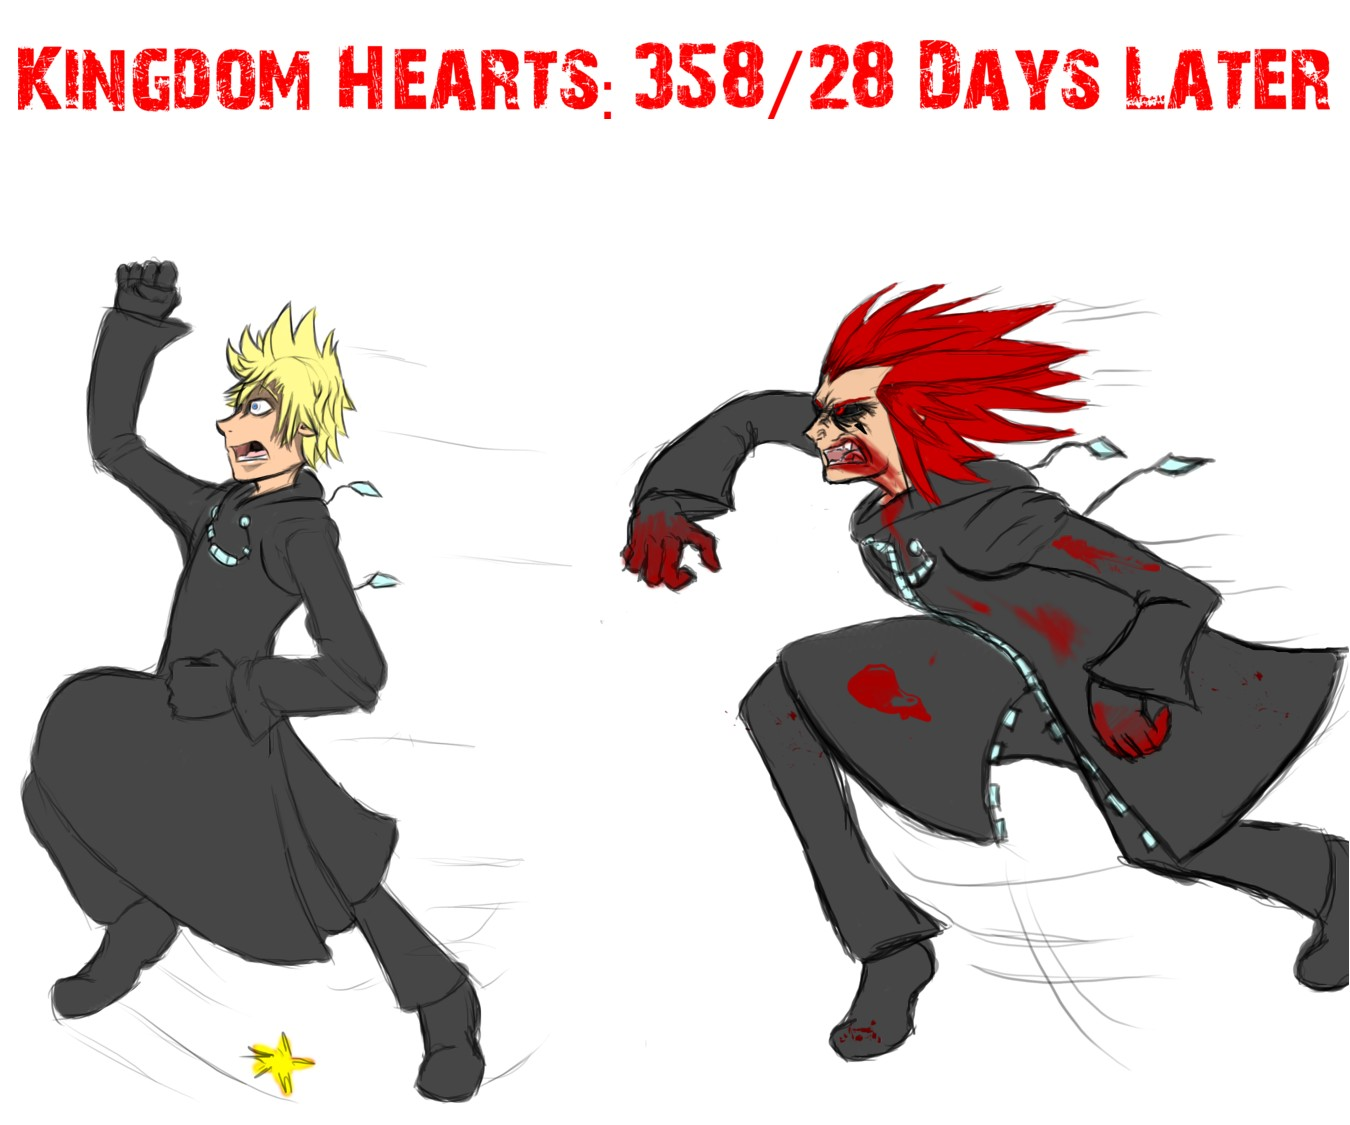 Kingdom Hearts: 358/28 Days Later by TheGameArtCritic